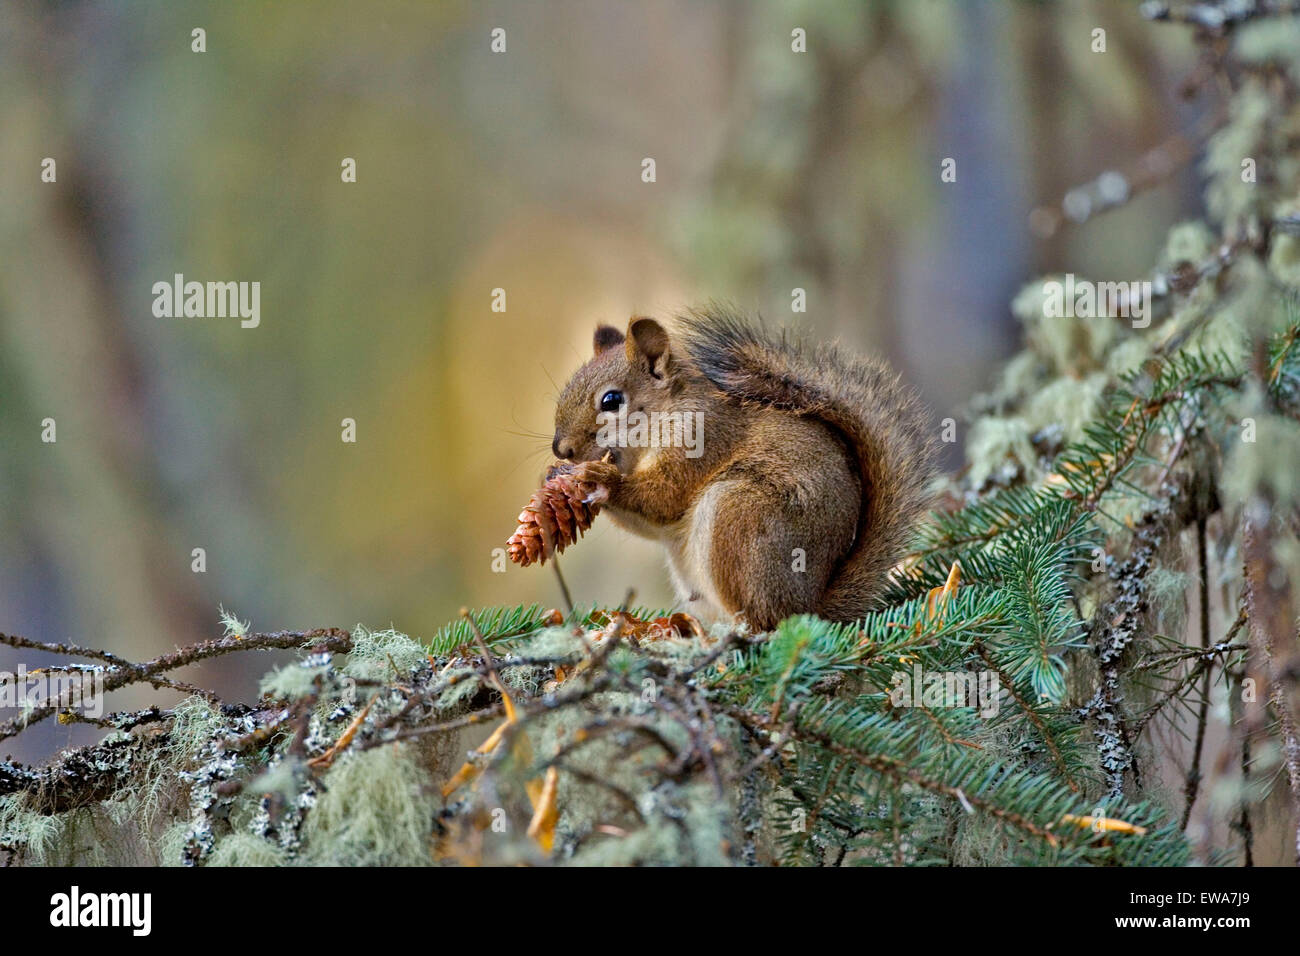 Red Squirrel in tree, feeding on cone seeds Stock Photo